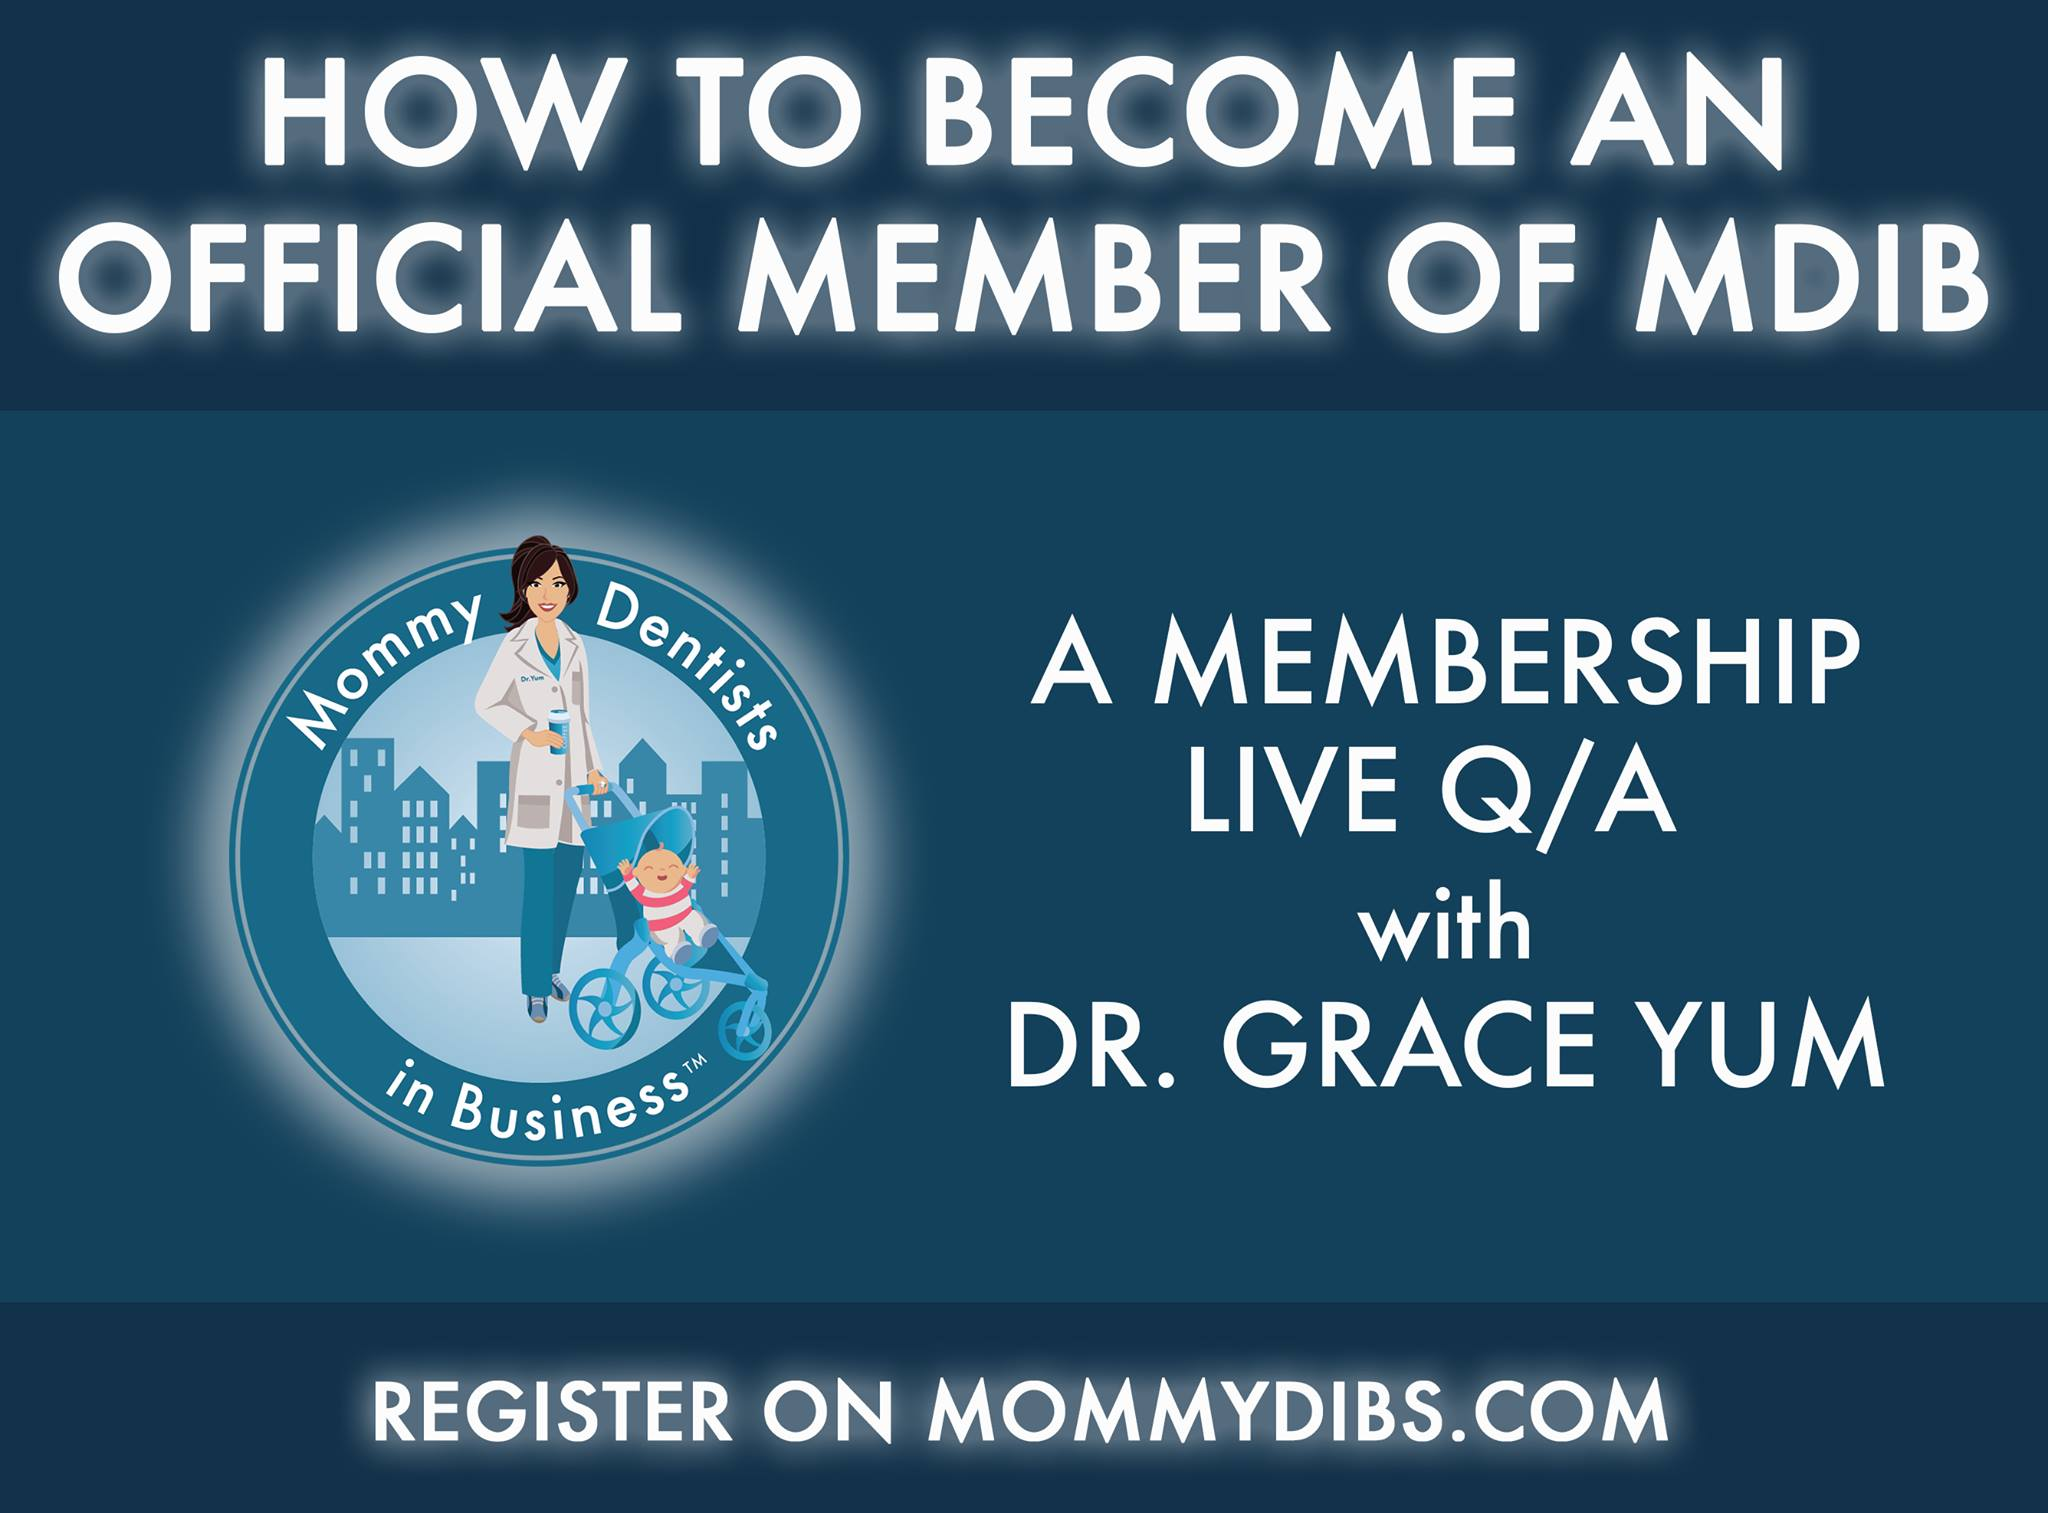 How to Become an Official Member of MDIB